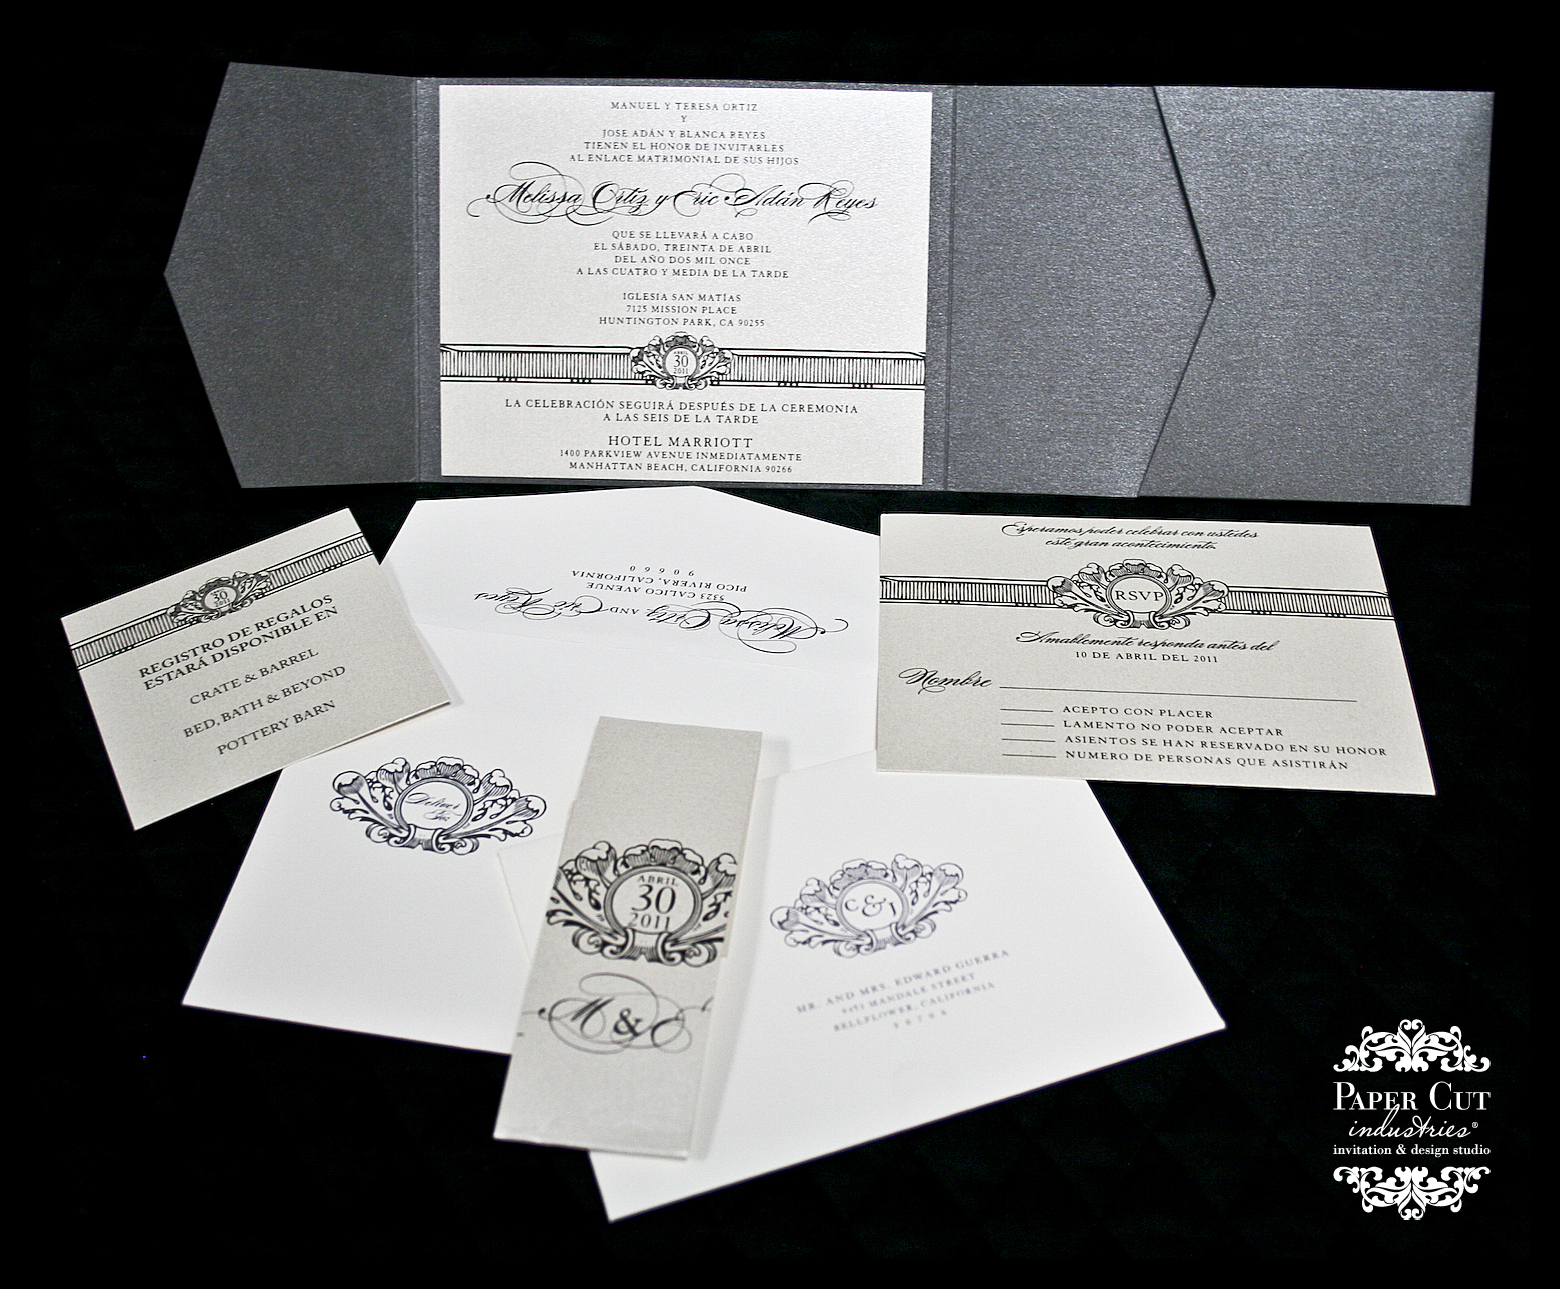 wedding invitations in spanish wedding invitations in spanish silver wedding invitation spanish wedding invitations